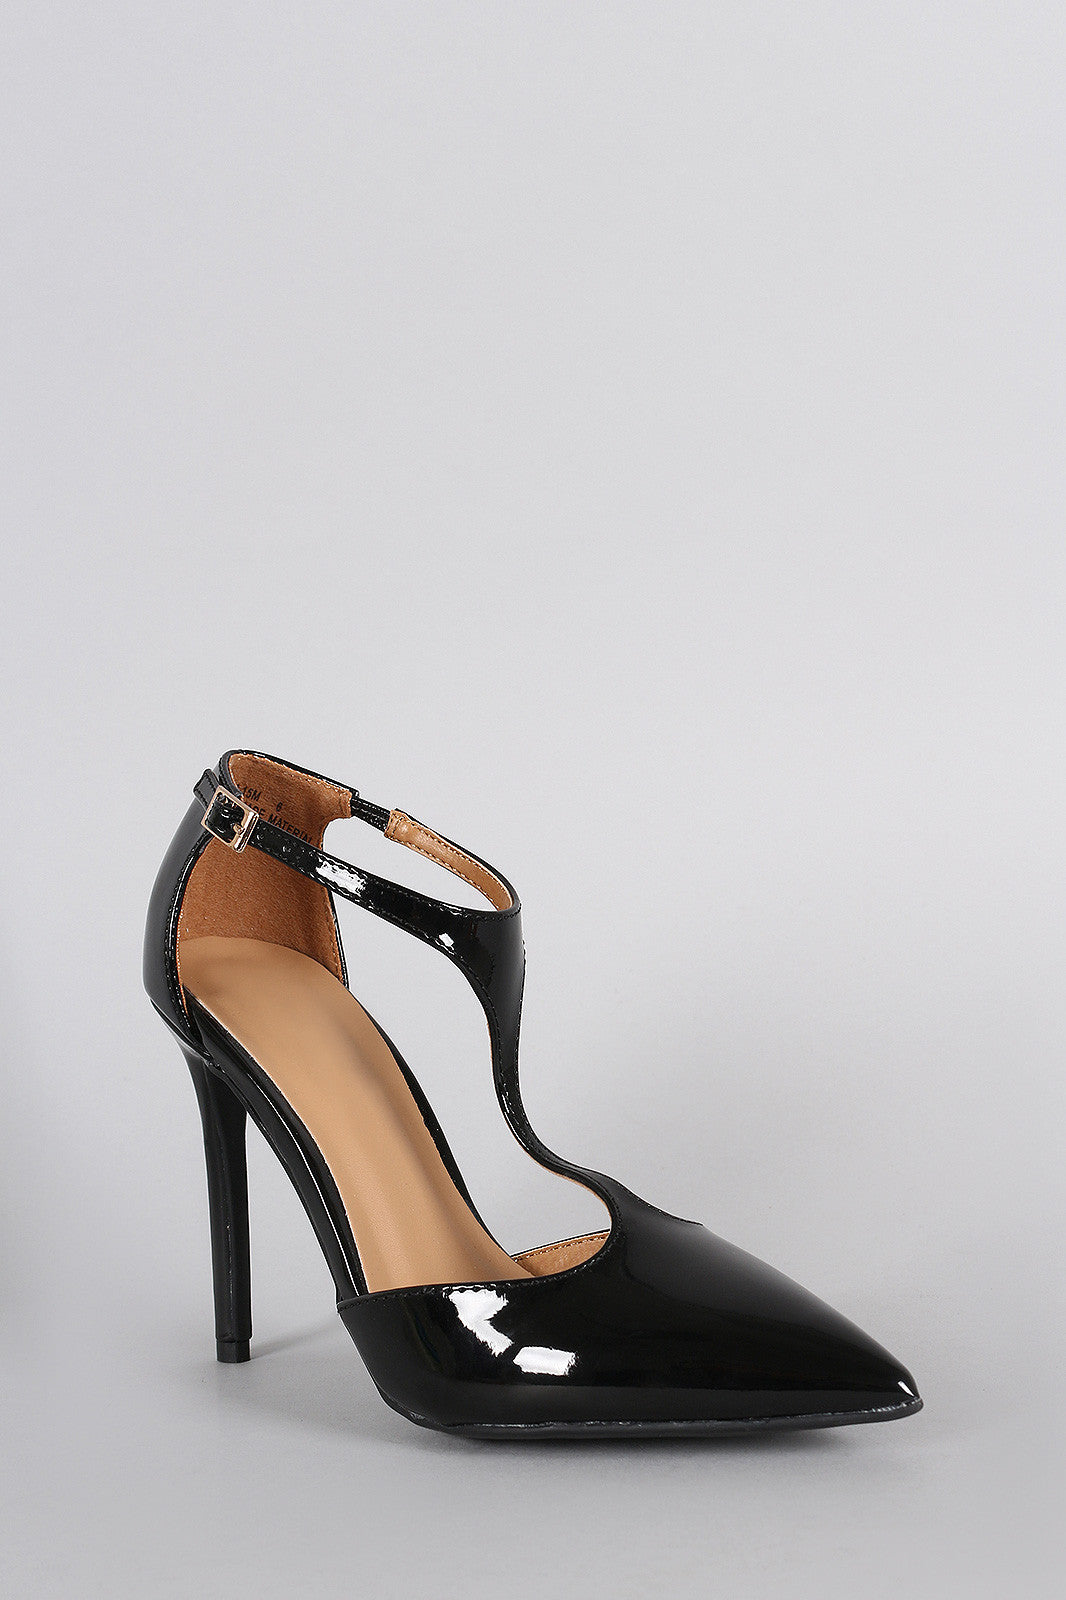 Patent Vegan Leather T-Strap Pointy Toe Pump - Thick 'N' Curvy Shop - 3